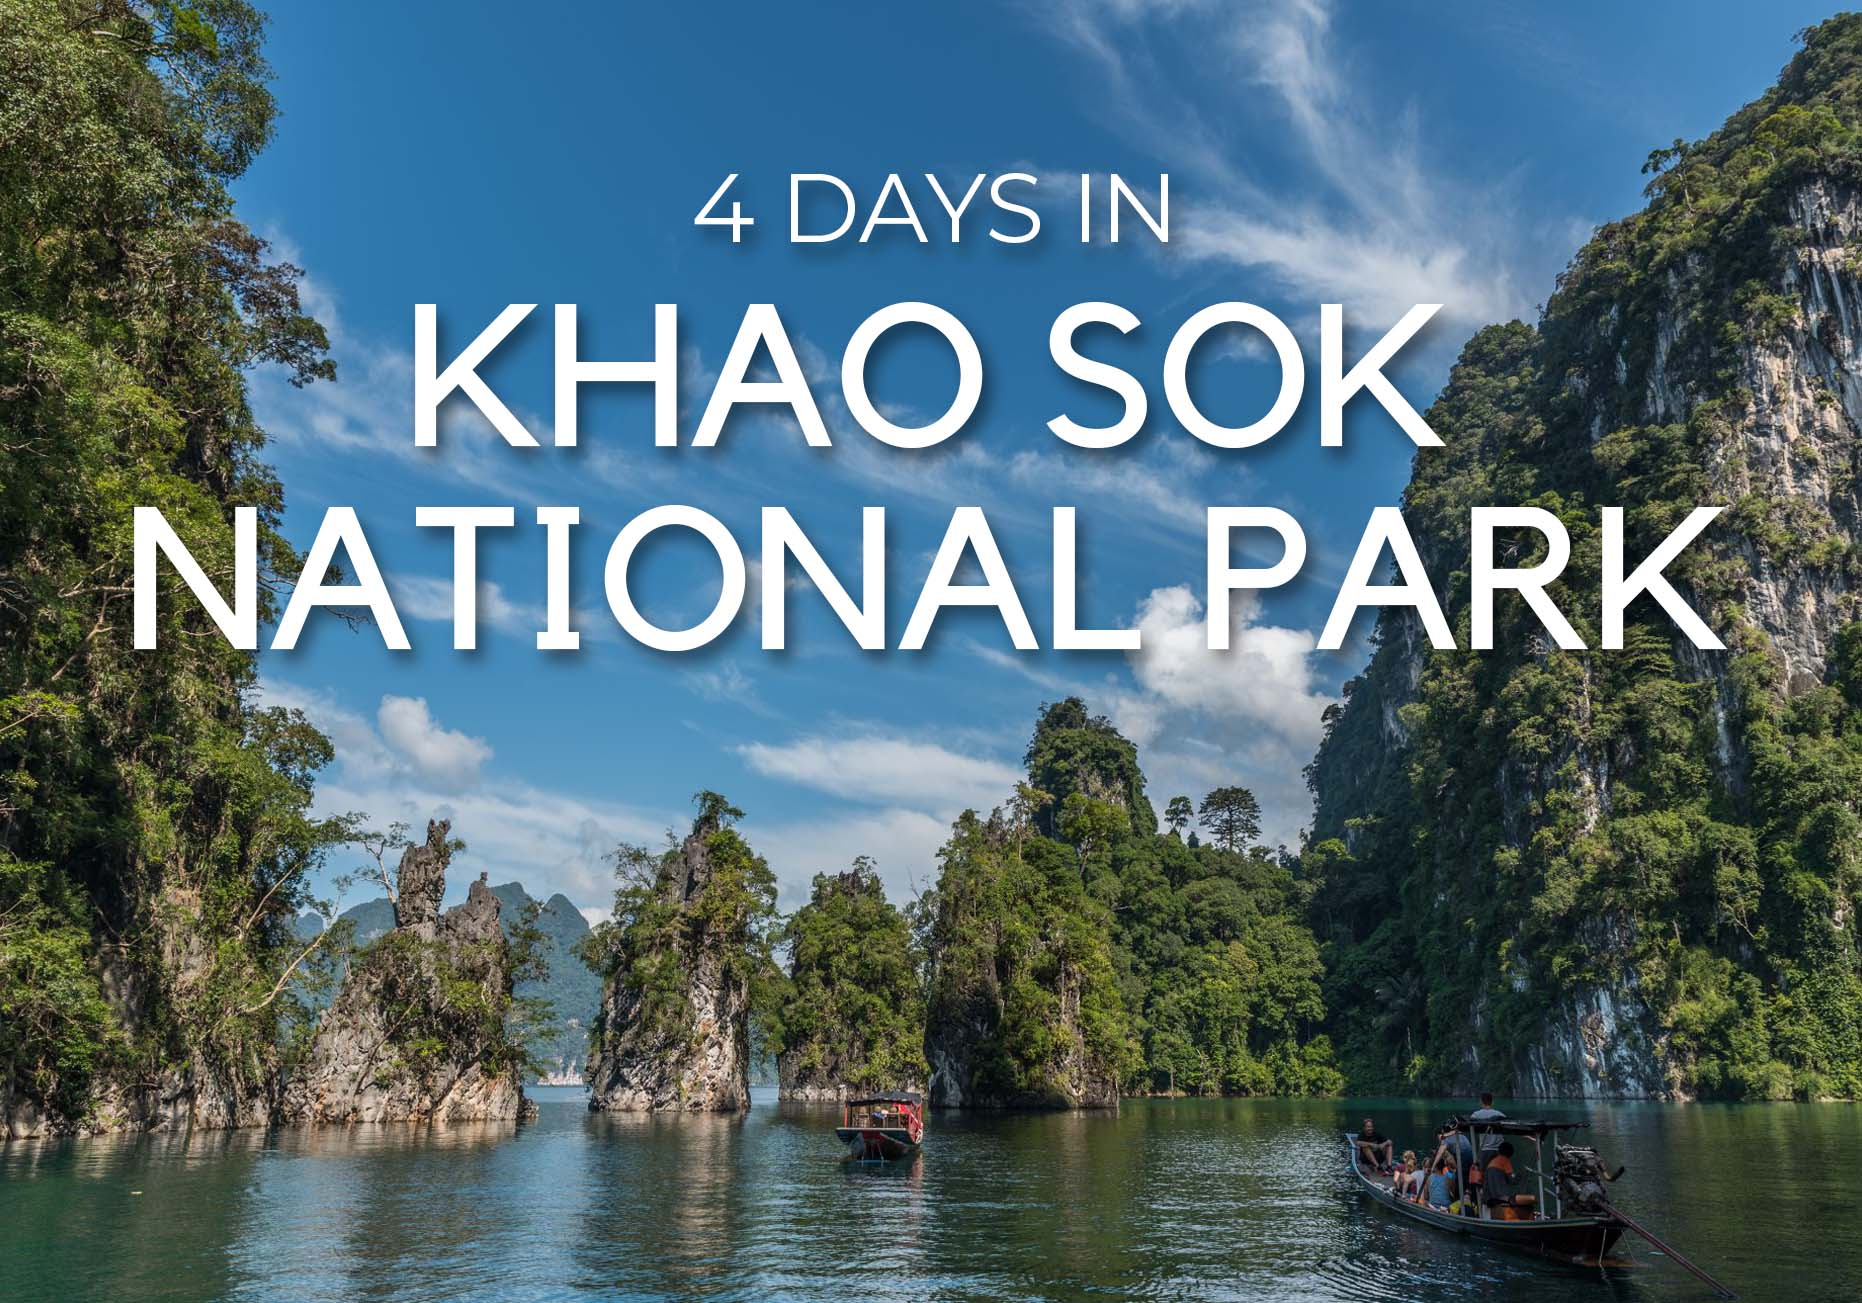 KHAO SOK NATIONAL PARK | Best Natural Places in Thailand